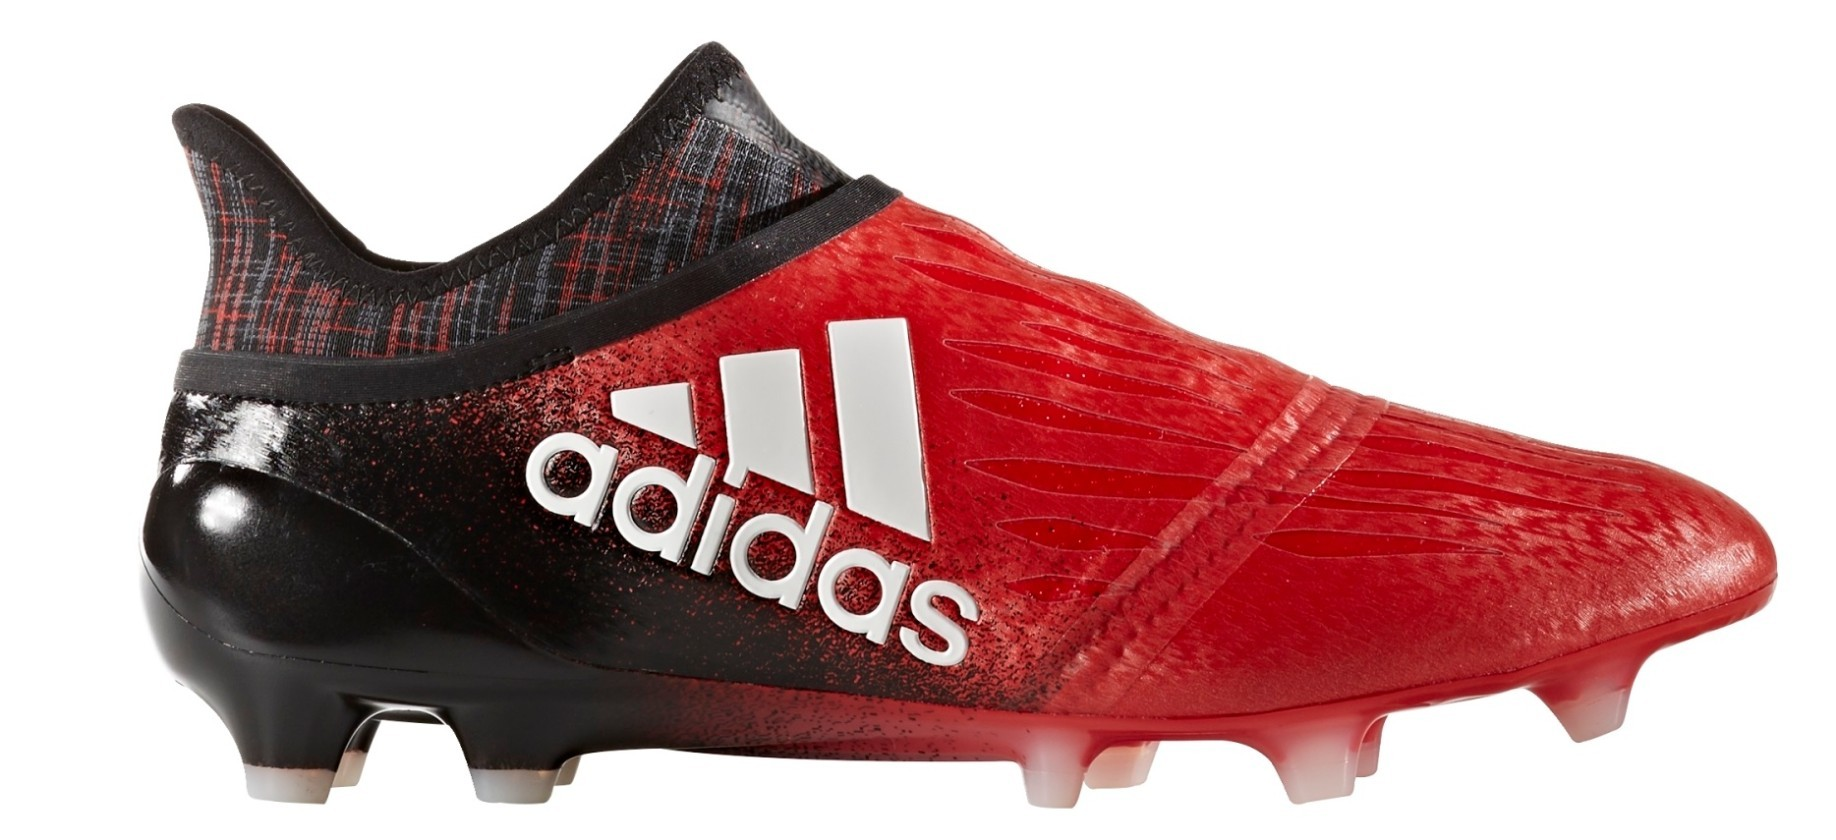 fc928a709c3 Football boots Adidas X 16+ PureChaos FG Red Limit Pack colore Red Black -  Adidas - SportIT.com